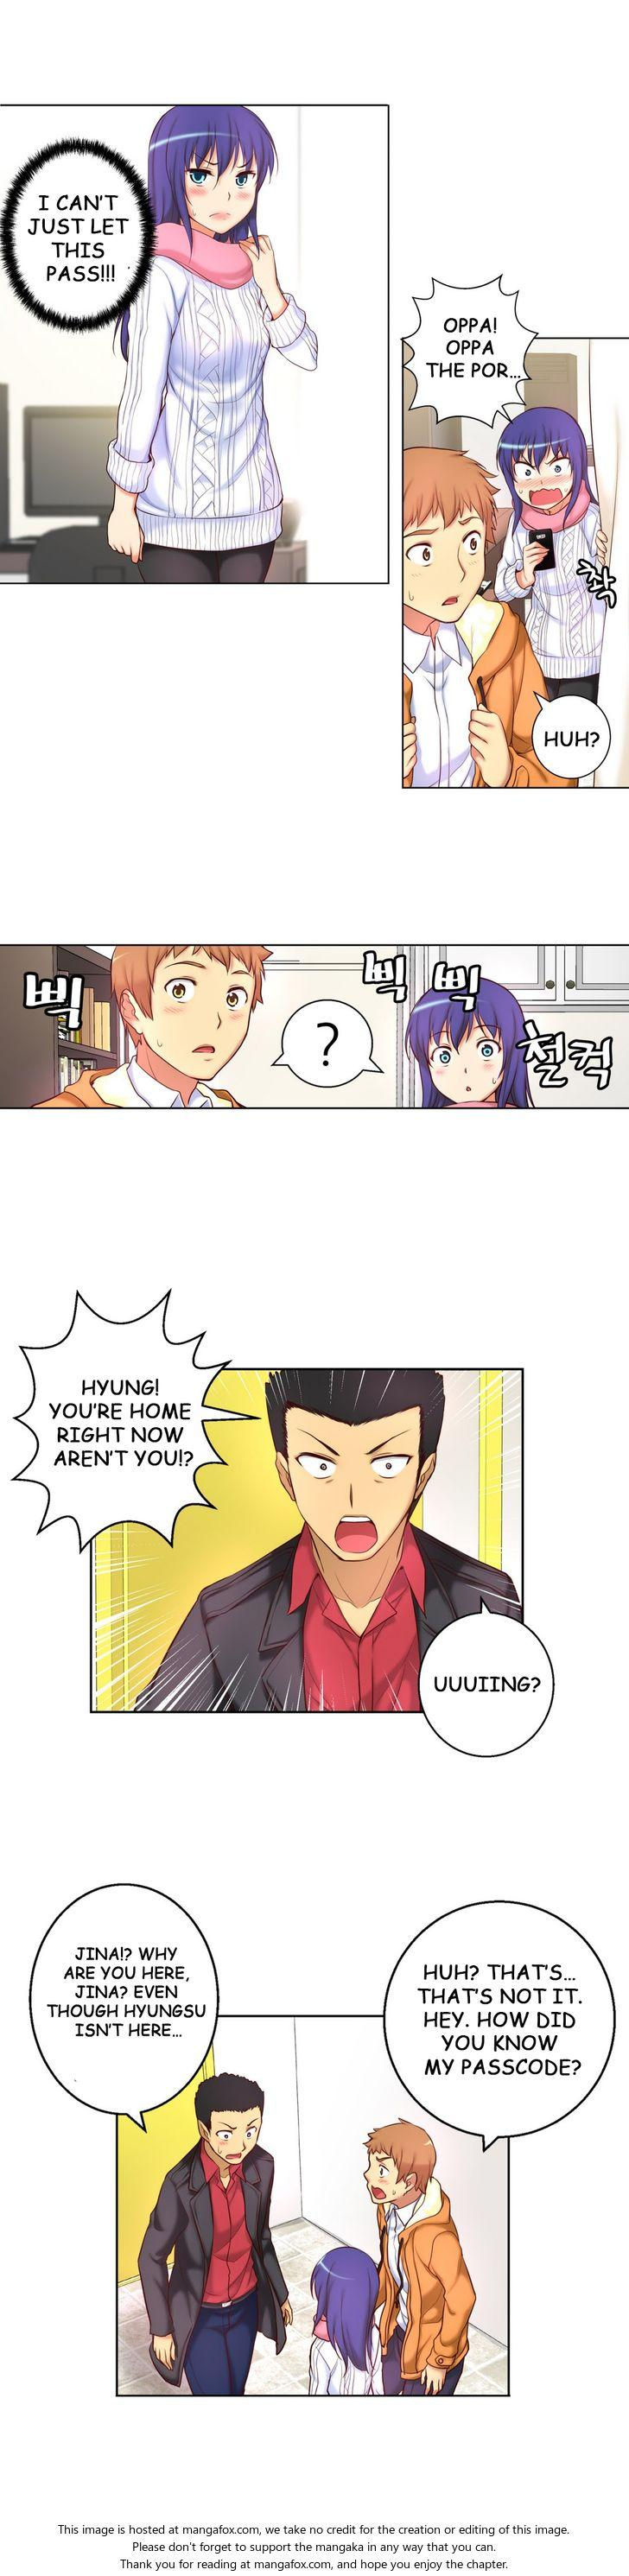 [Donggul Gom] She is Young (English) Part 1/2 689